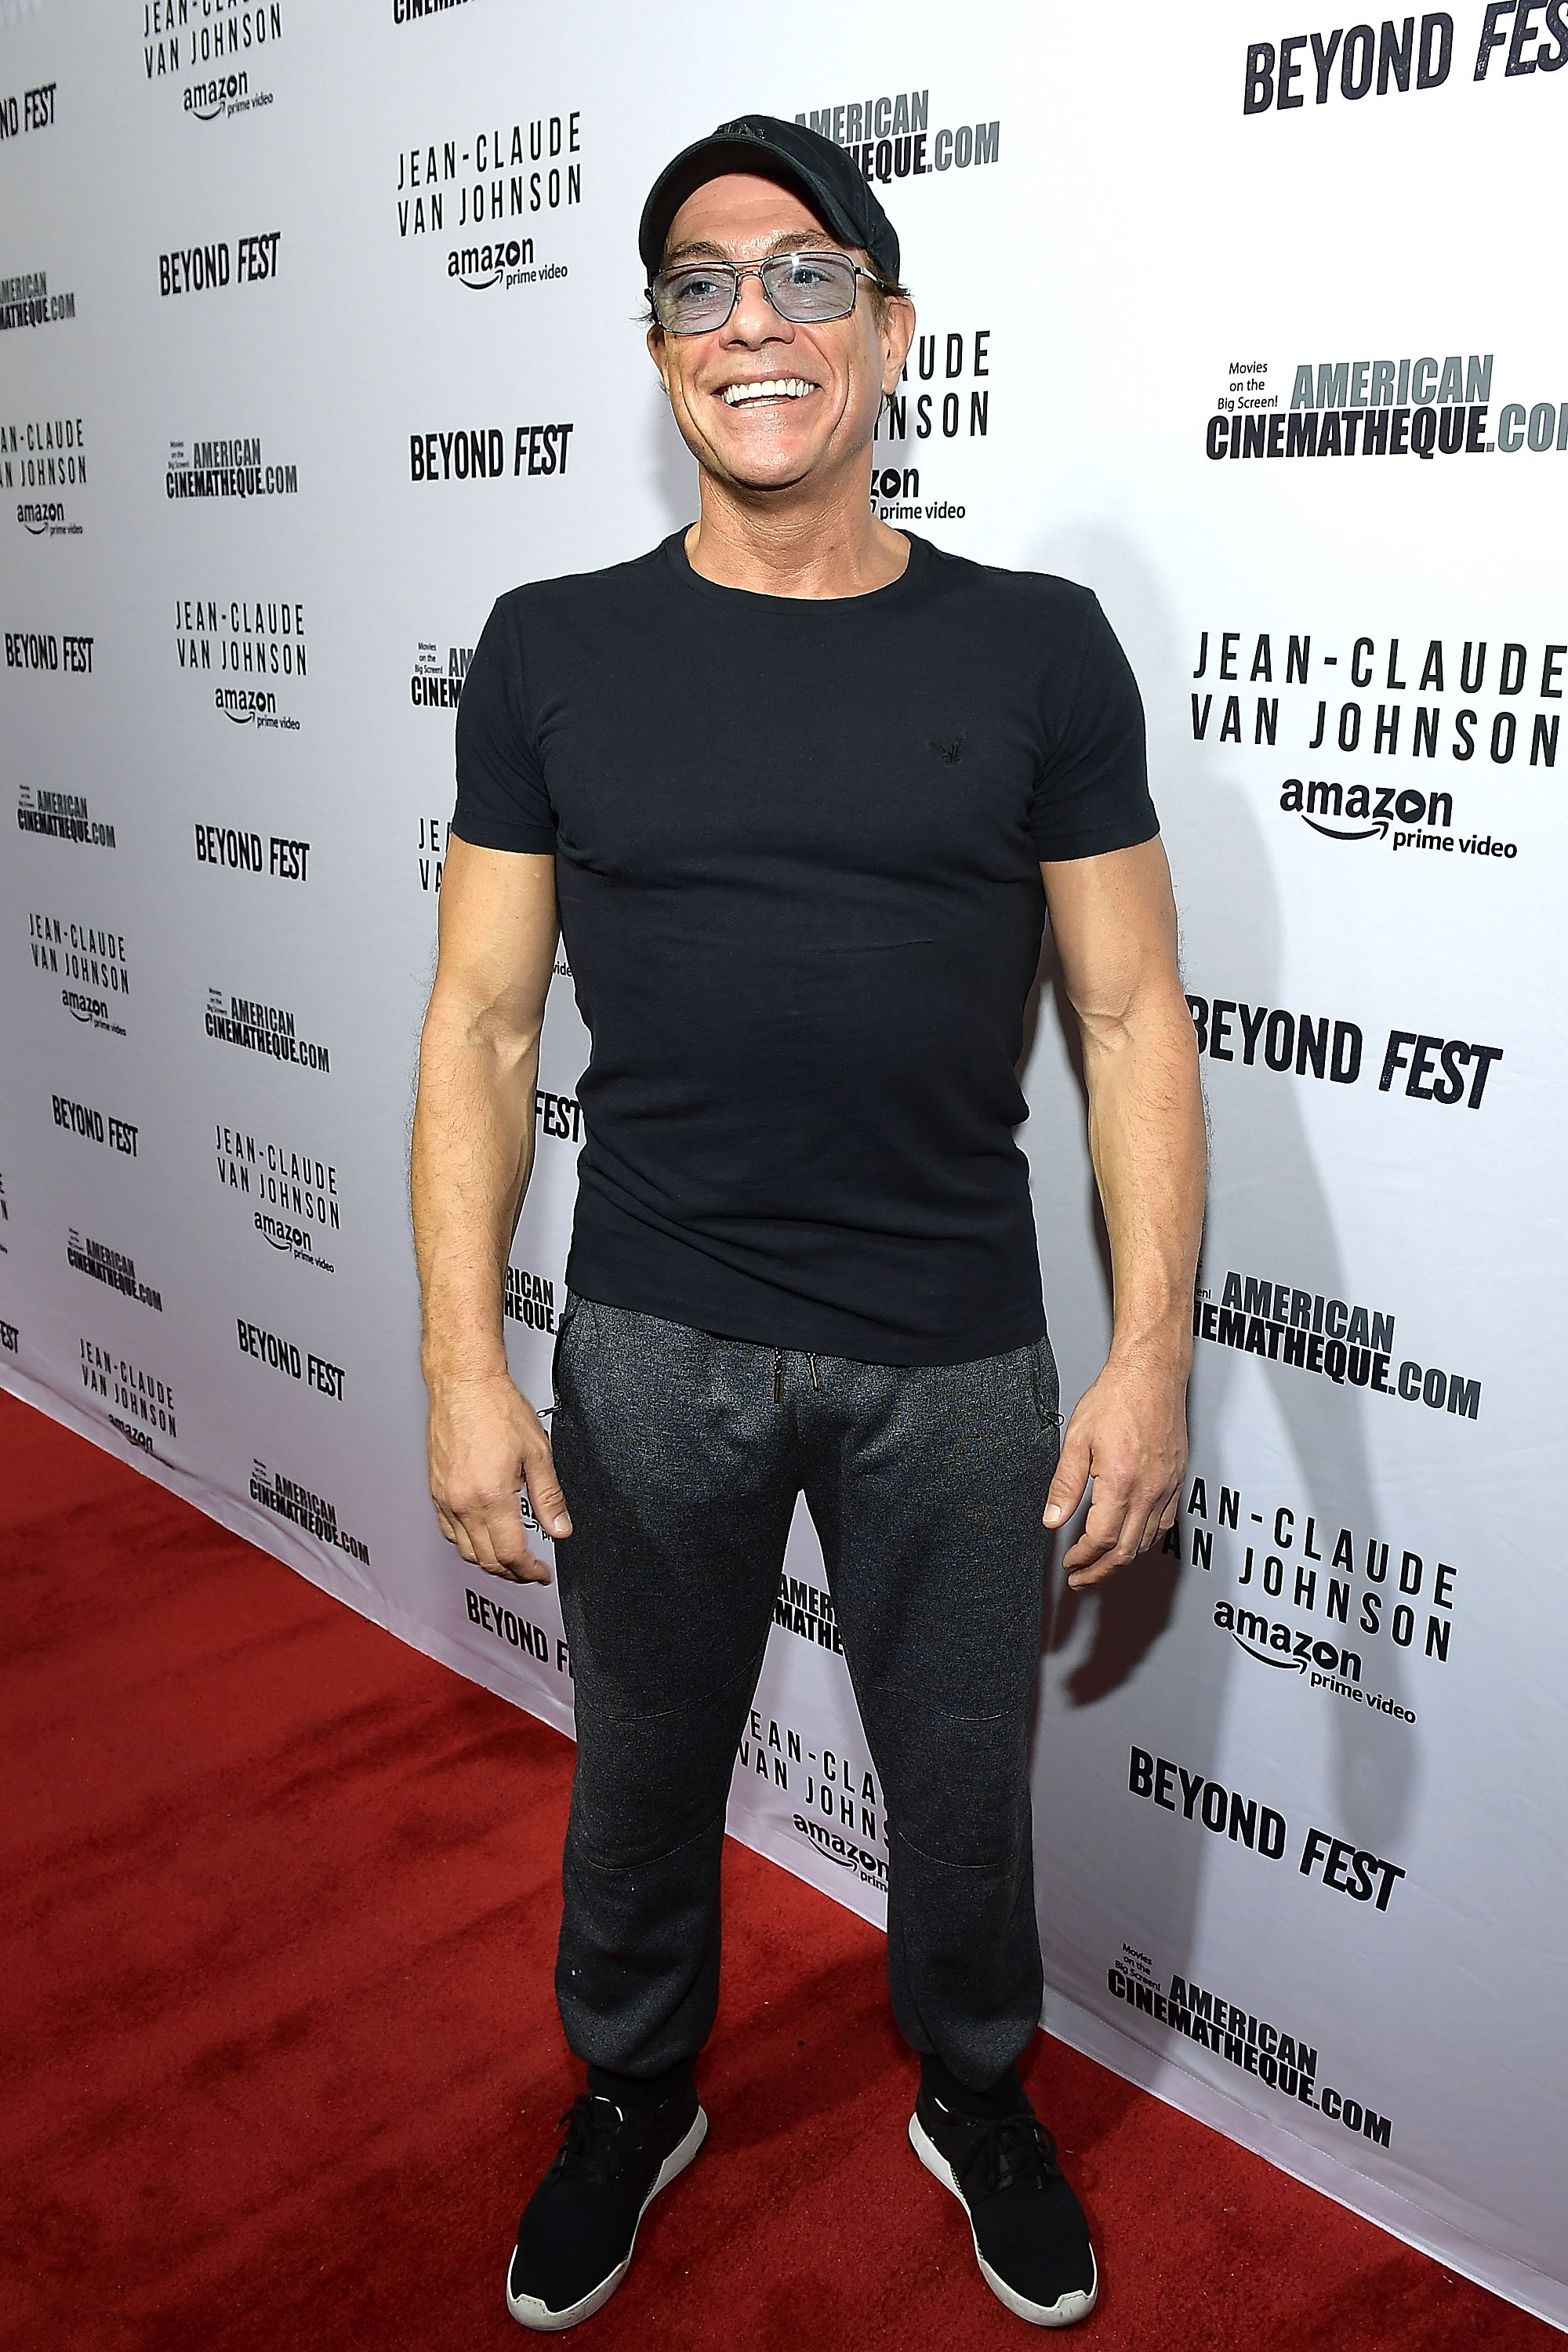 Actor Jean-Claude Van Damme attends the Beyond Fest screening and Cast/Creator panel of Amazon Prime Video's exclusive series 'Jean-Claude Van Johnson' at the Egyptian Theatre on October 9, 2017 in Hollywood, California.